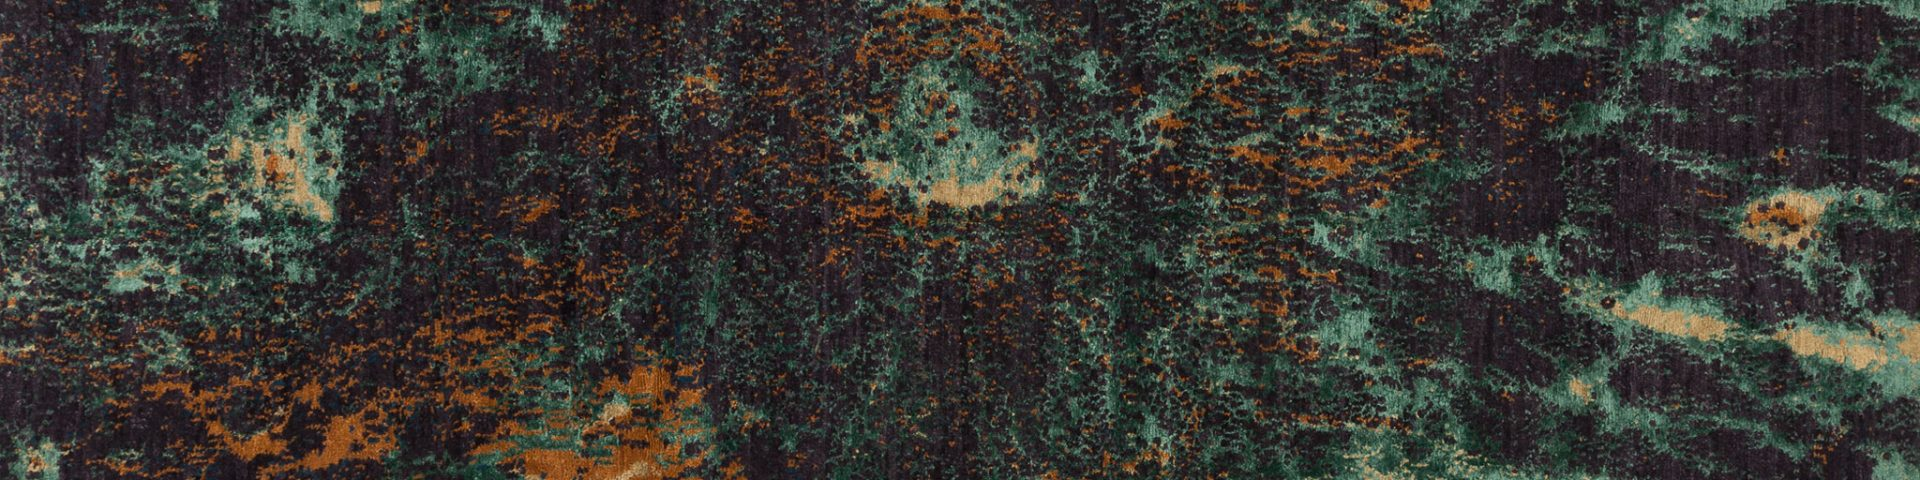 Moonscape shown in colour Malachite by Tufenkian   Image courtesy of Tufenkian   The Ruggist